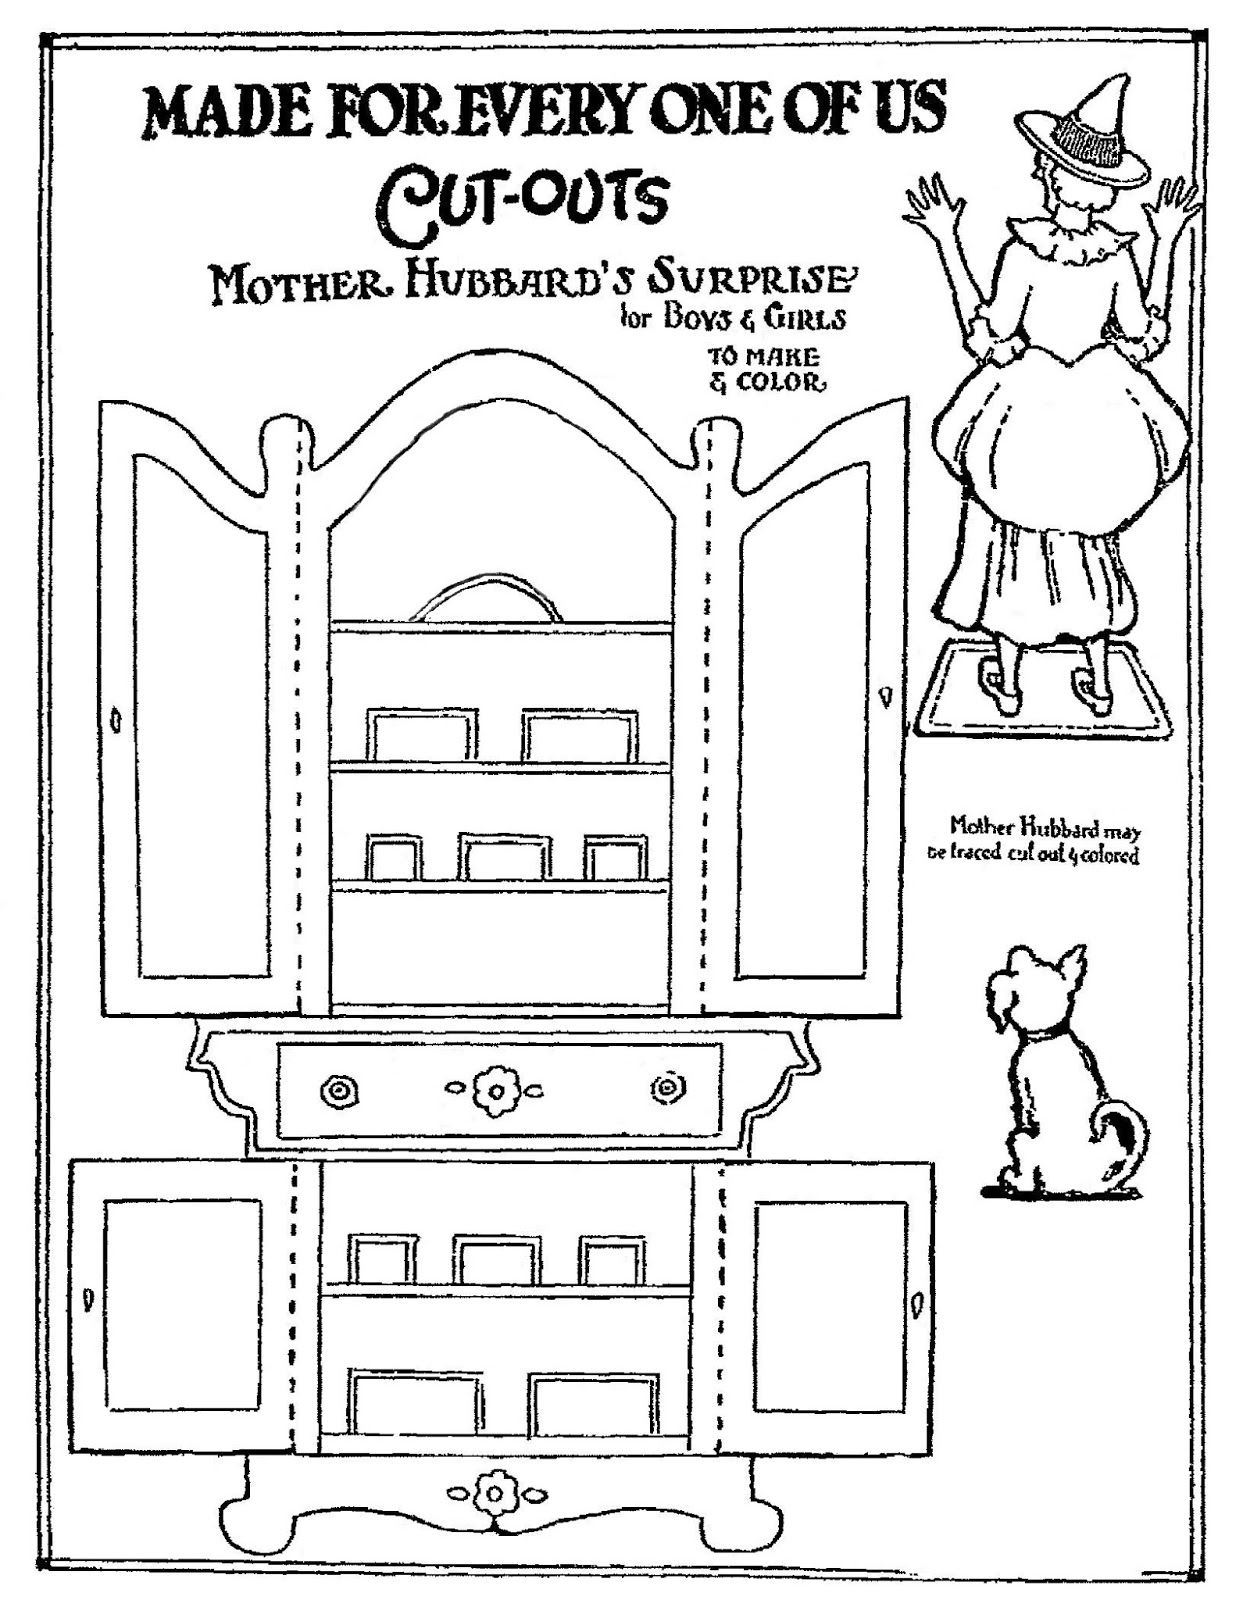 Mostly Paper Dolls Too June 2014 Old Mother Hubbard Kids Nursery Rhymes Paper Dolls